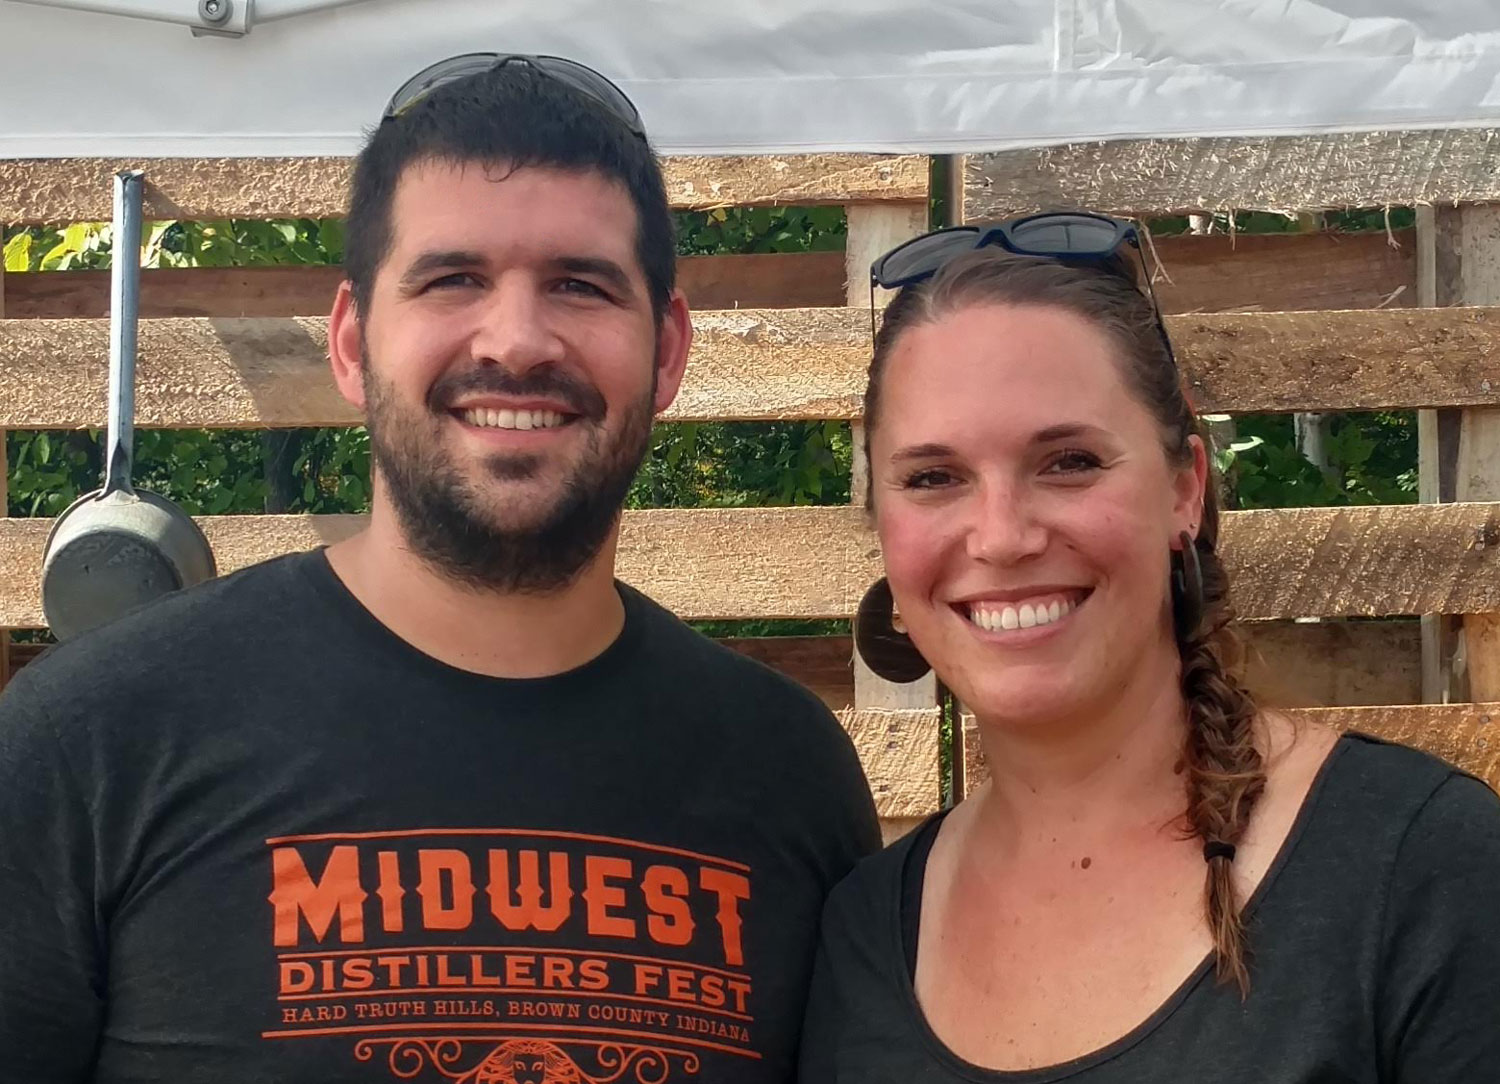 1st Annual Midwest Distillers Fest at Hard Truth Hills.